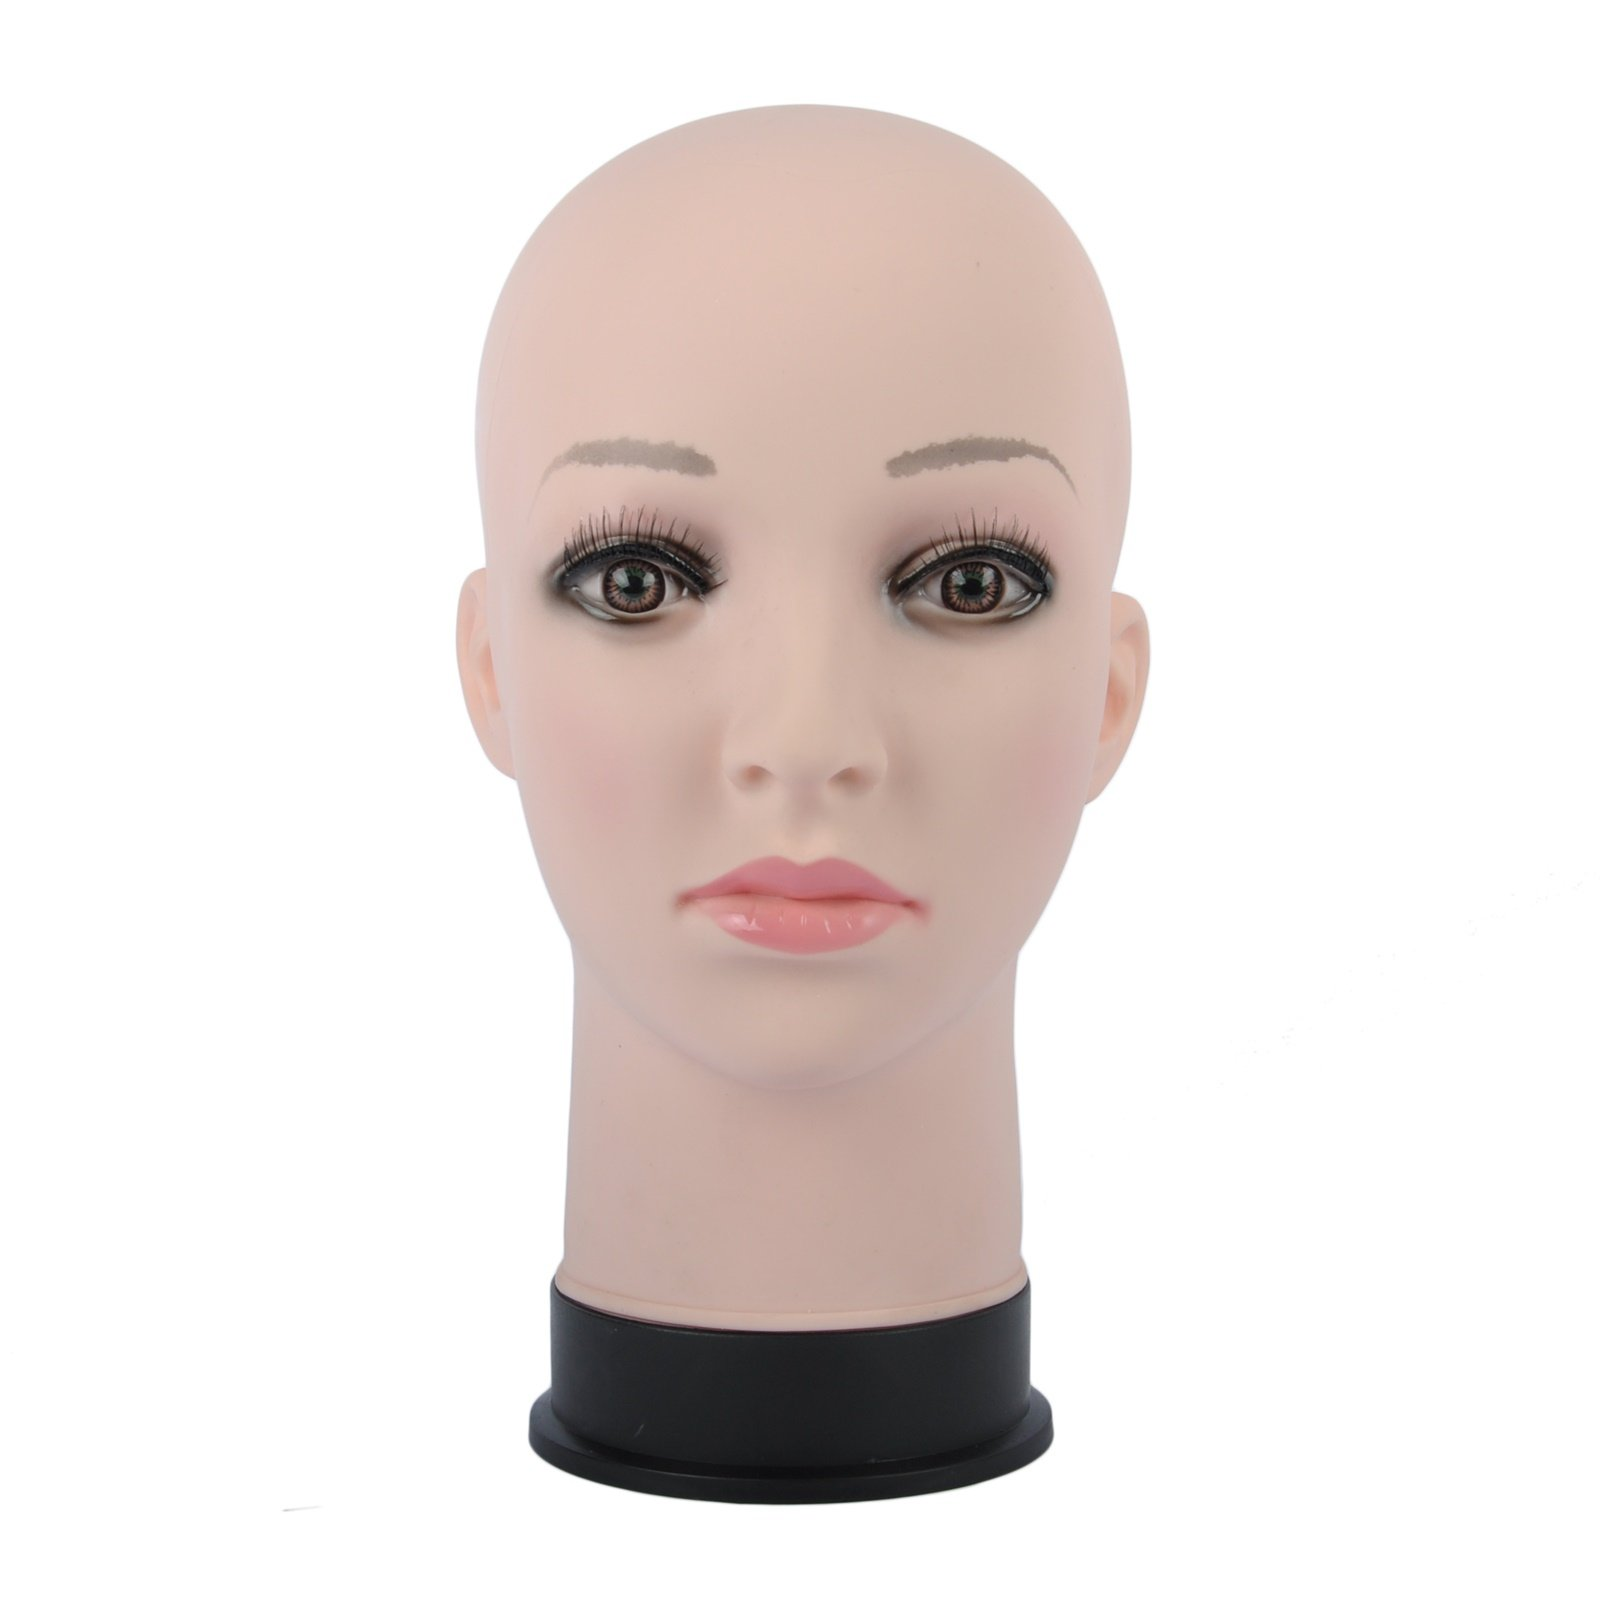 BHD BEAUTY Bald Mannequin Head Beige Female Professional Cosmetology for Wig Making, Display wigs, eyeglasses, hairs with T pins